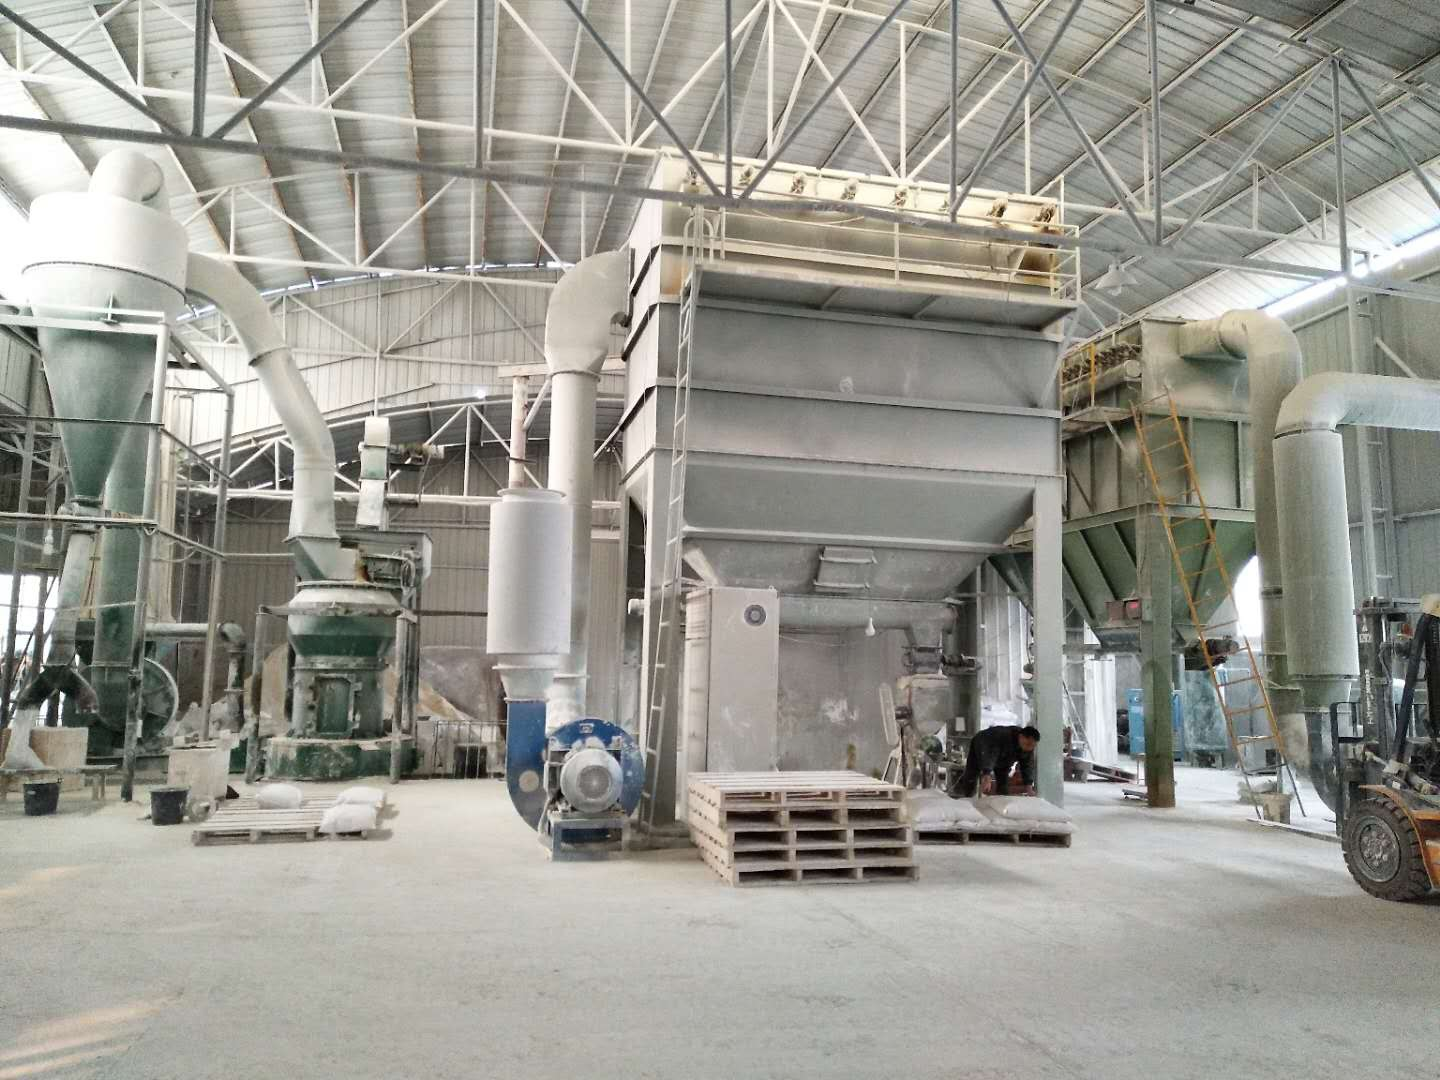 Barite grinding plant 9X Minerals